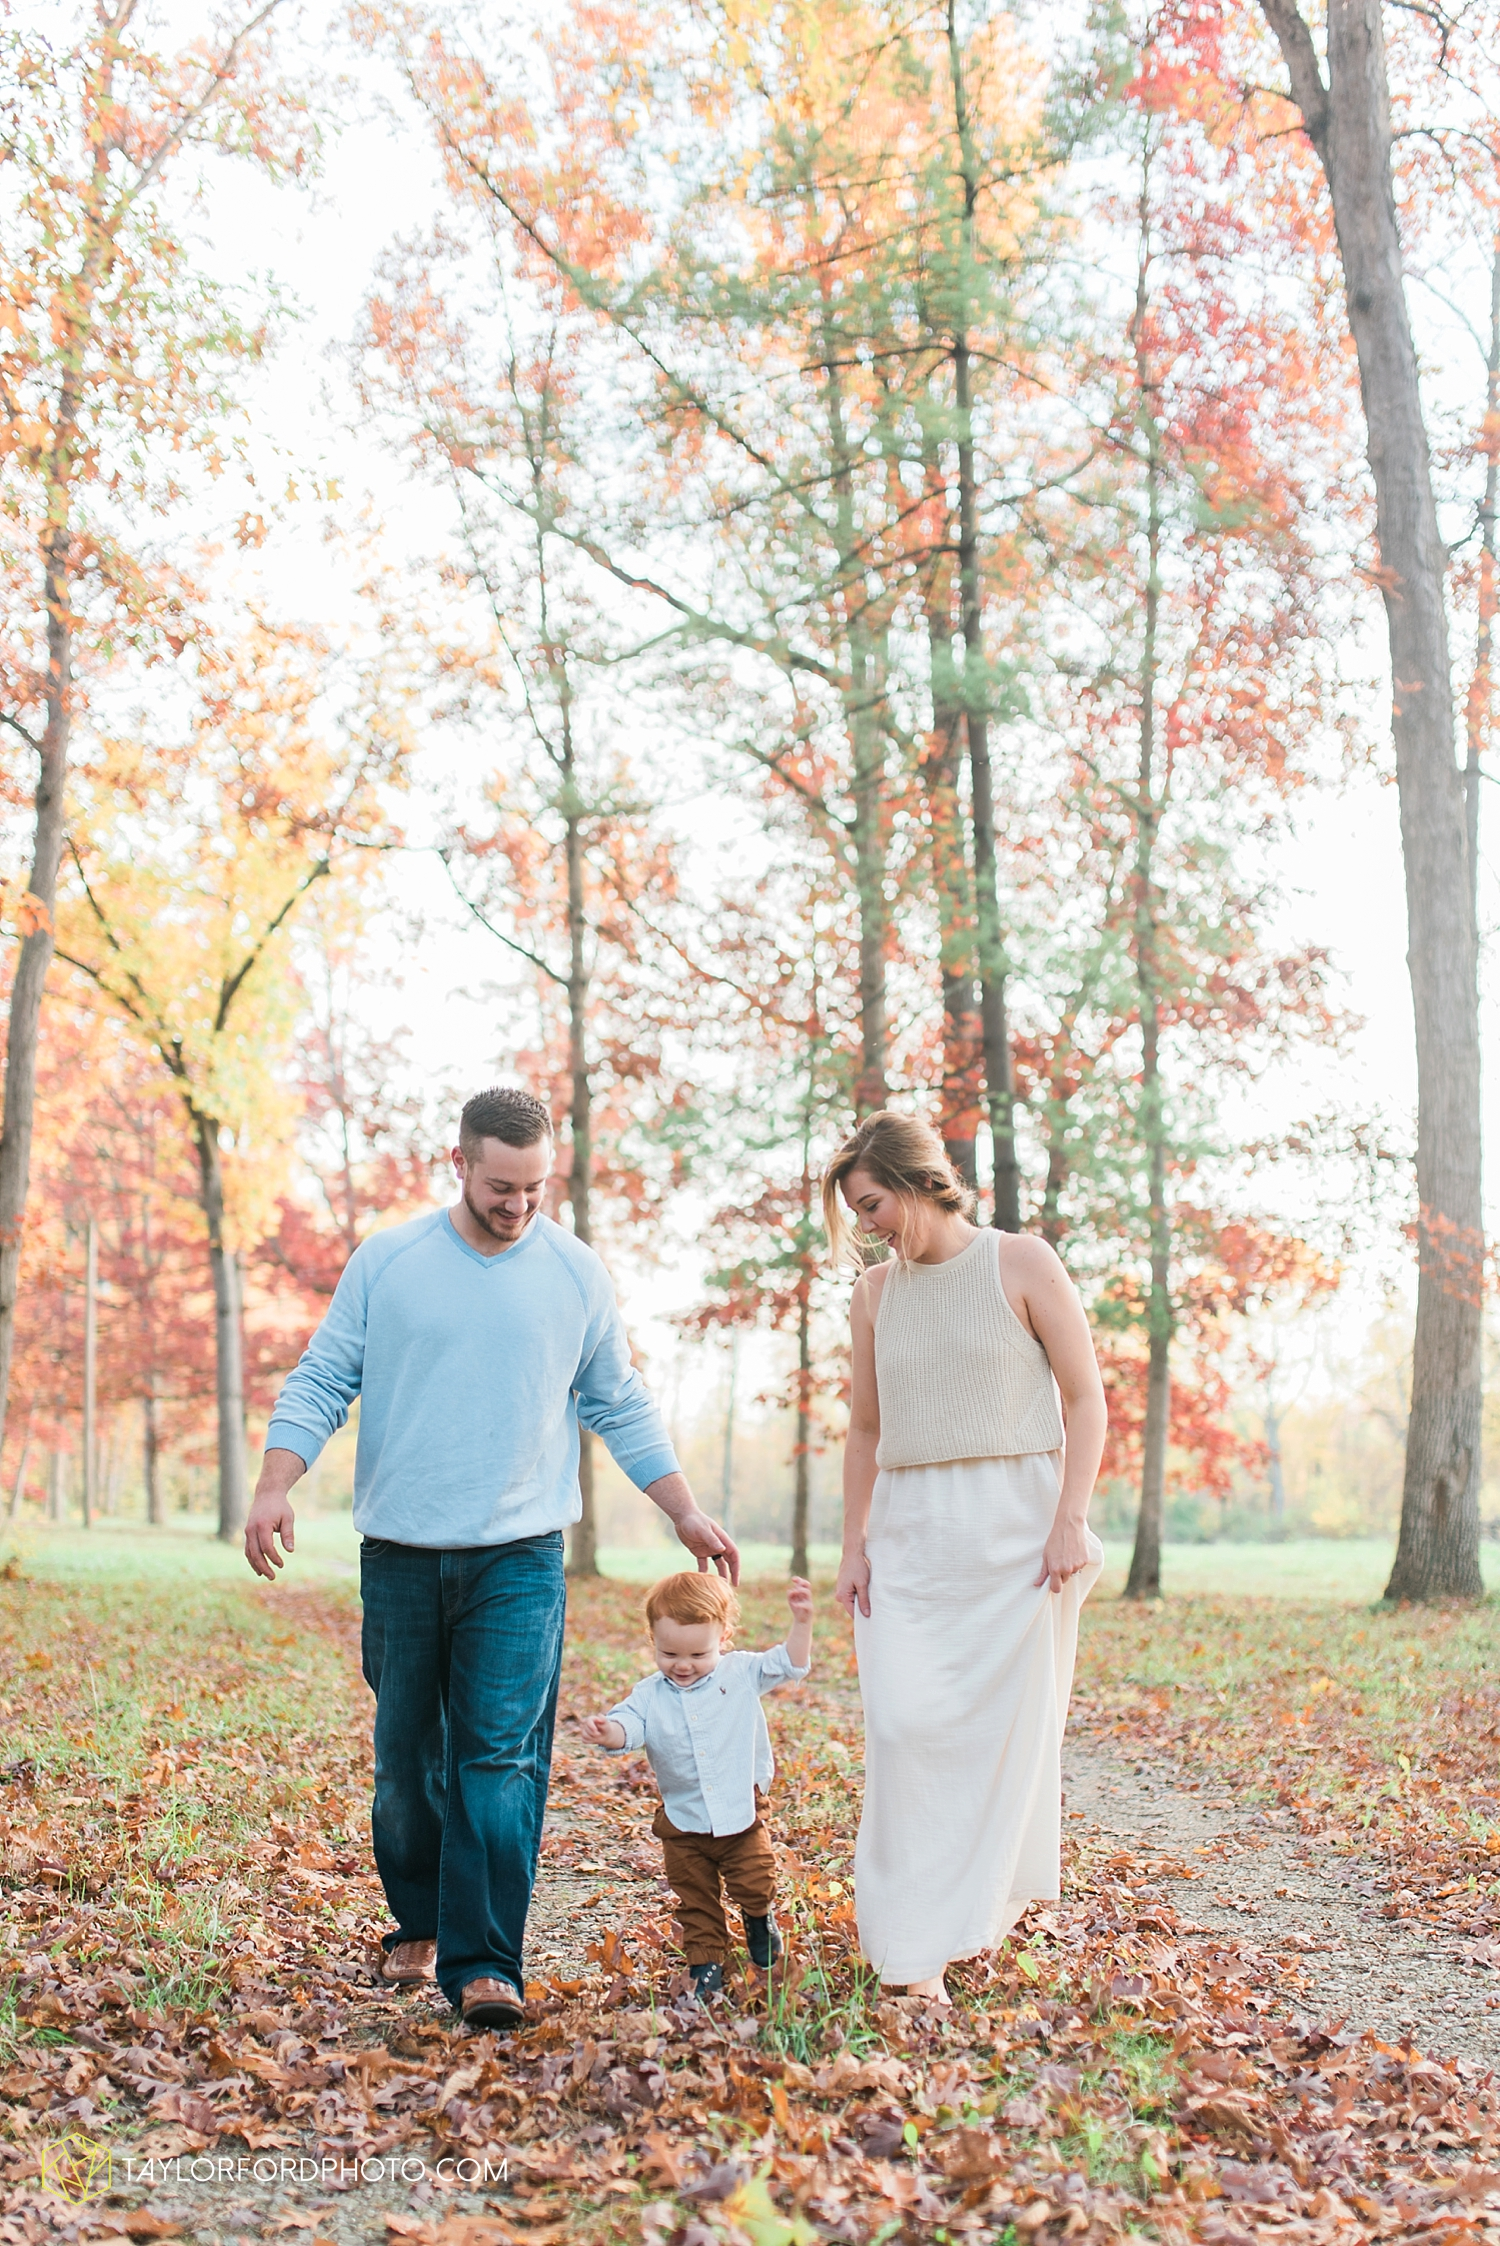 huntertown_indiana_family_photographer_taylor_ford_3618.jpg